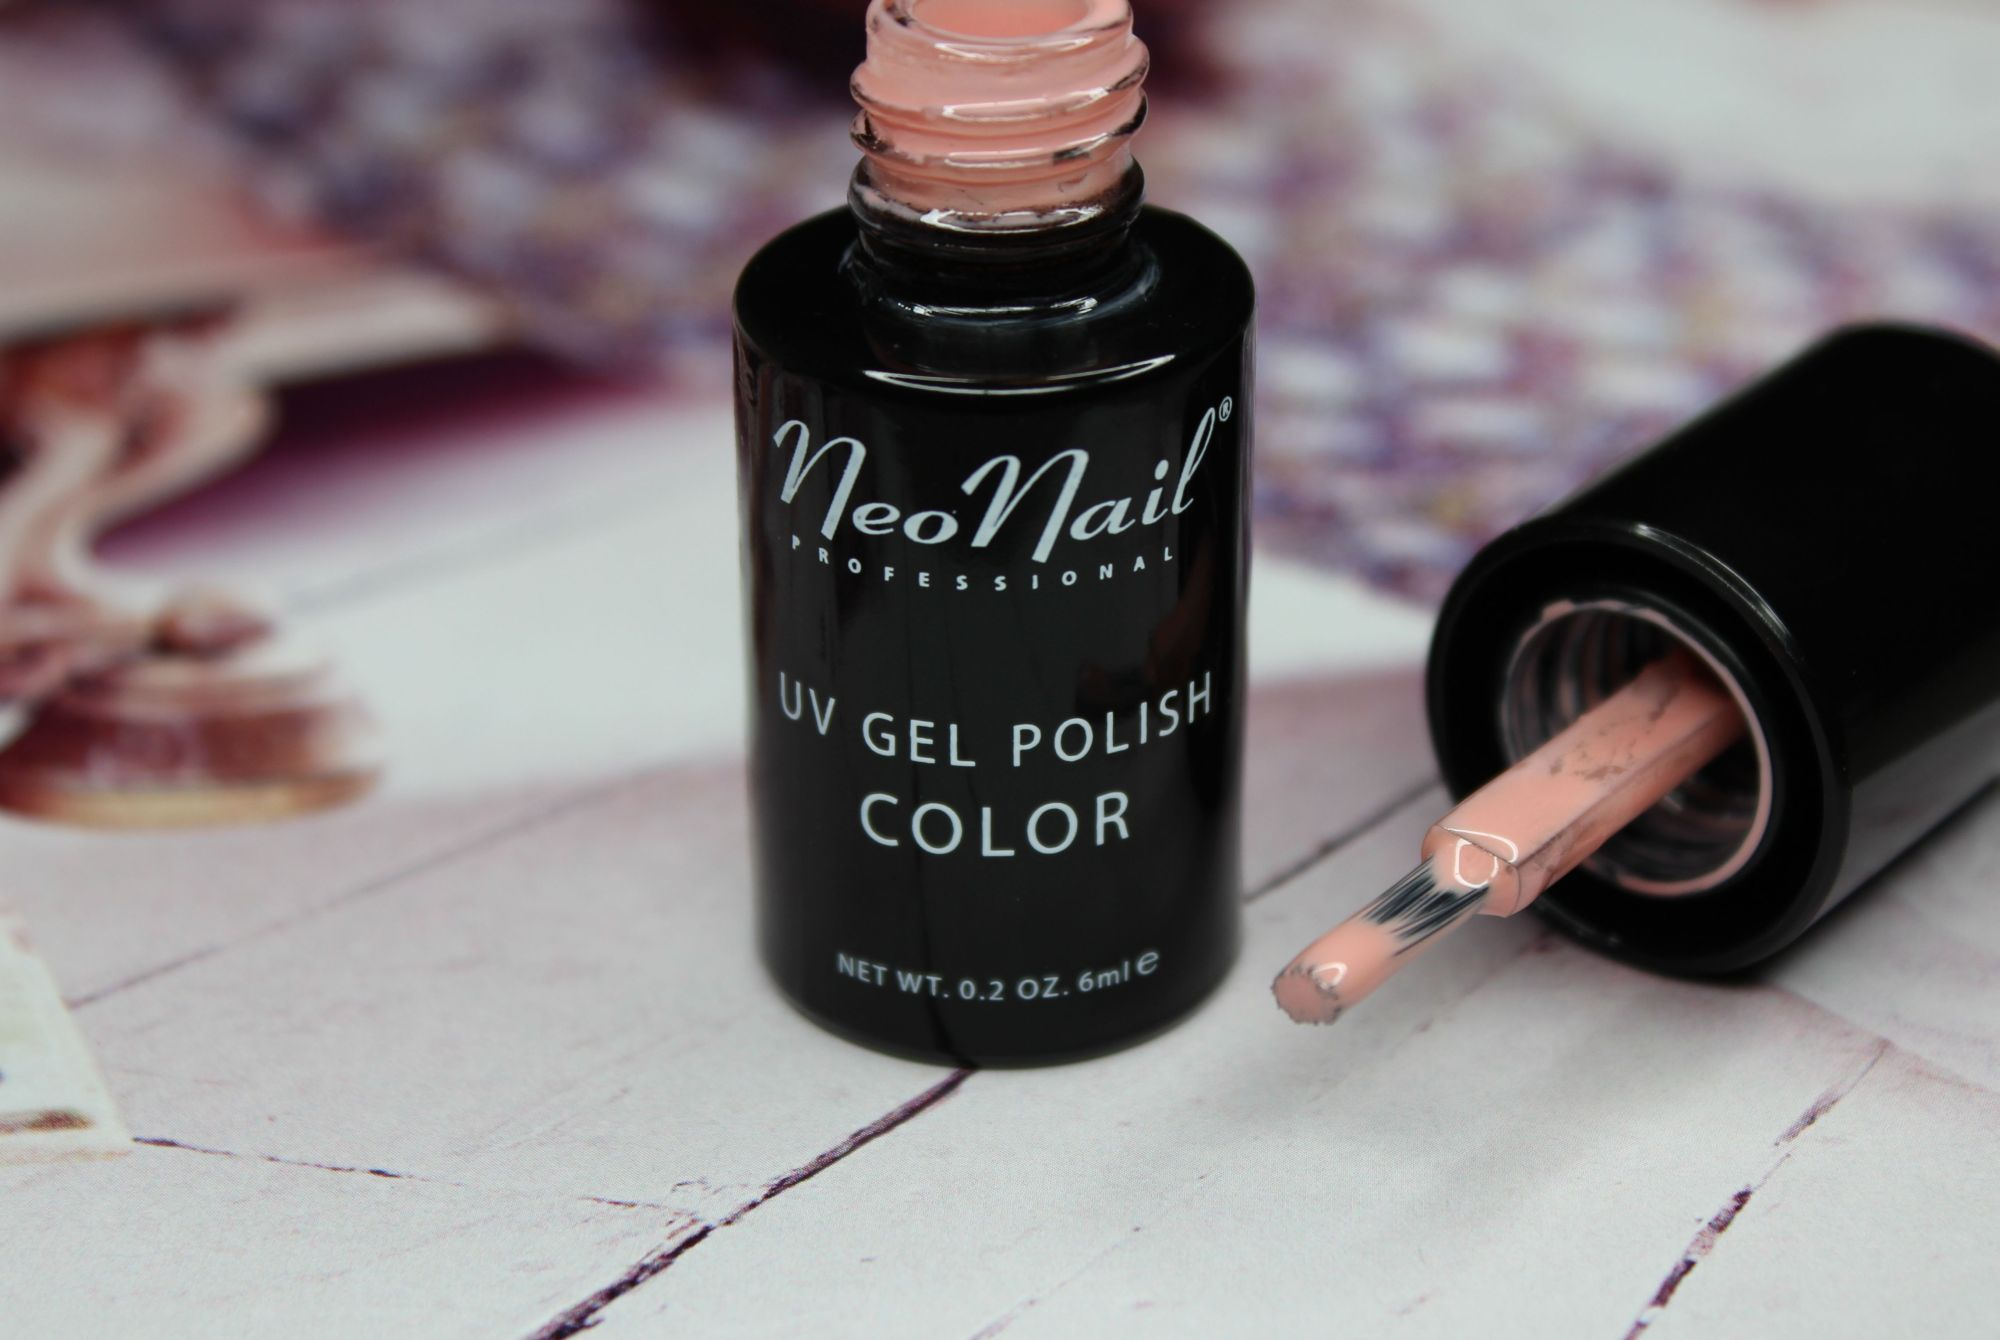 TOP 16 - NeoNail UV Gel Polish Color in Cashmere Rose 3